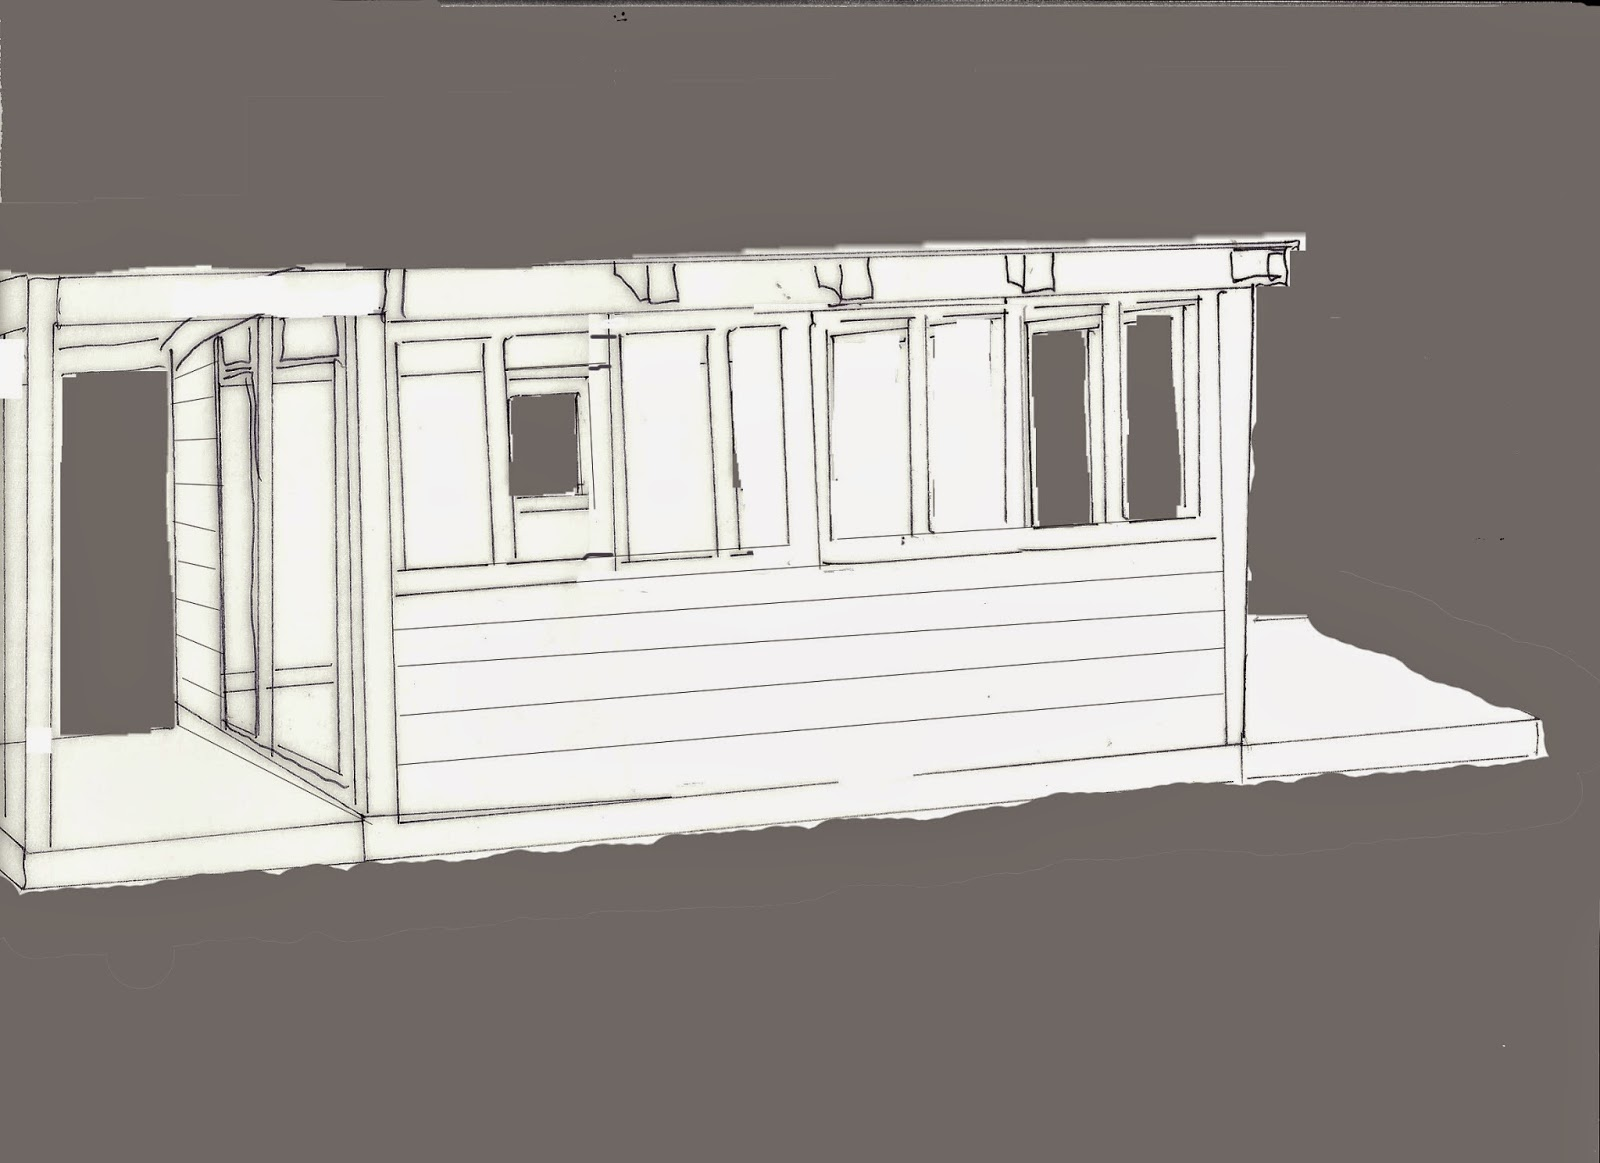 Outline of a shed split down the middle ,with two windows on each side of the front, weatherboarding,  and a deck on each side. The background is coloured grey to show placement of windows and doors at the side and rear.